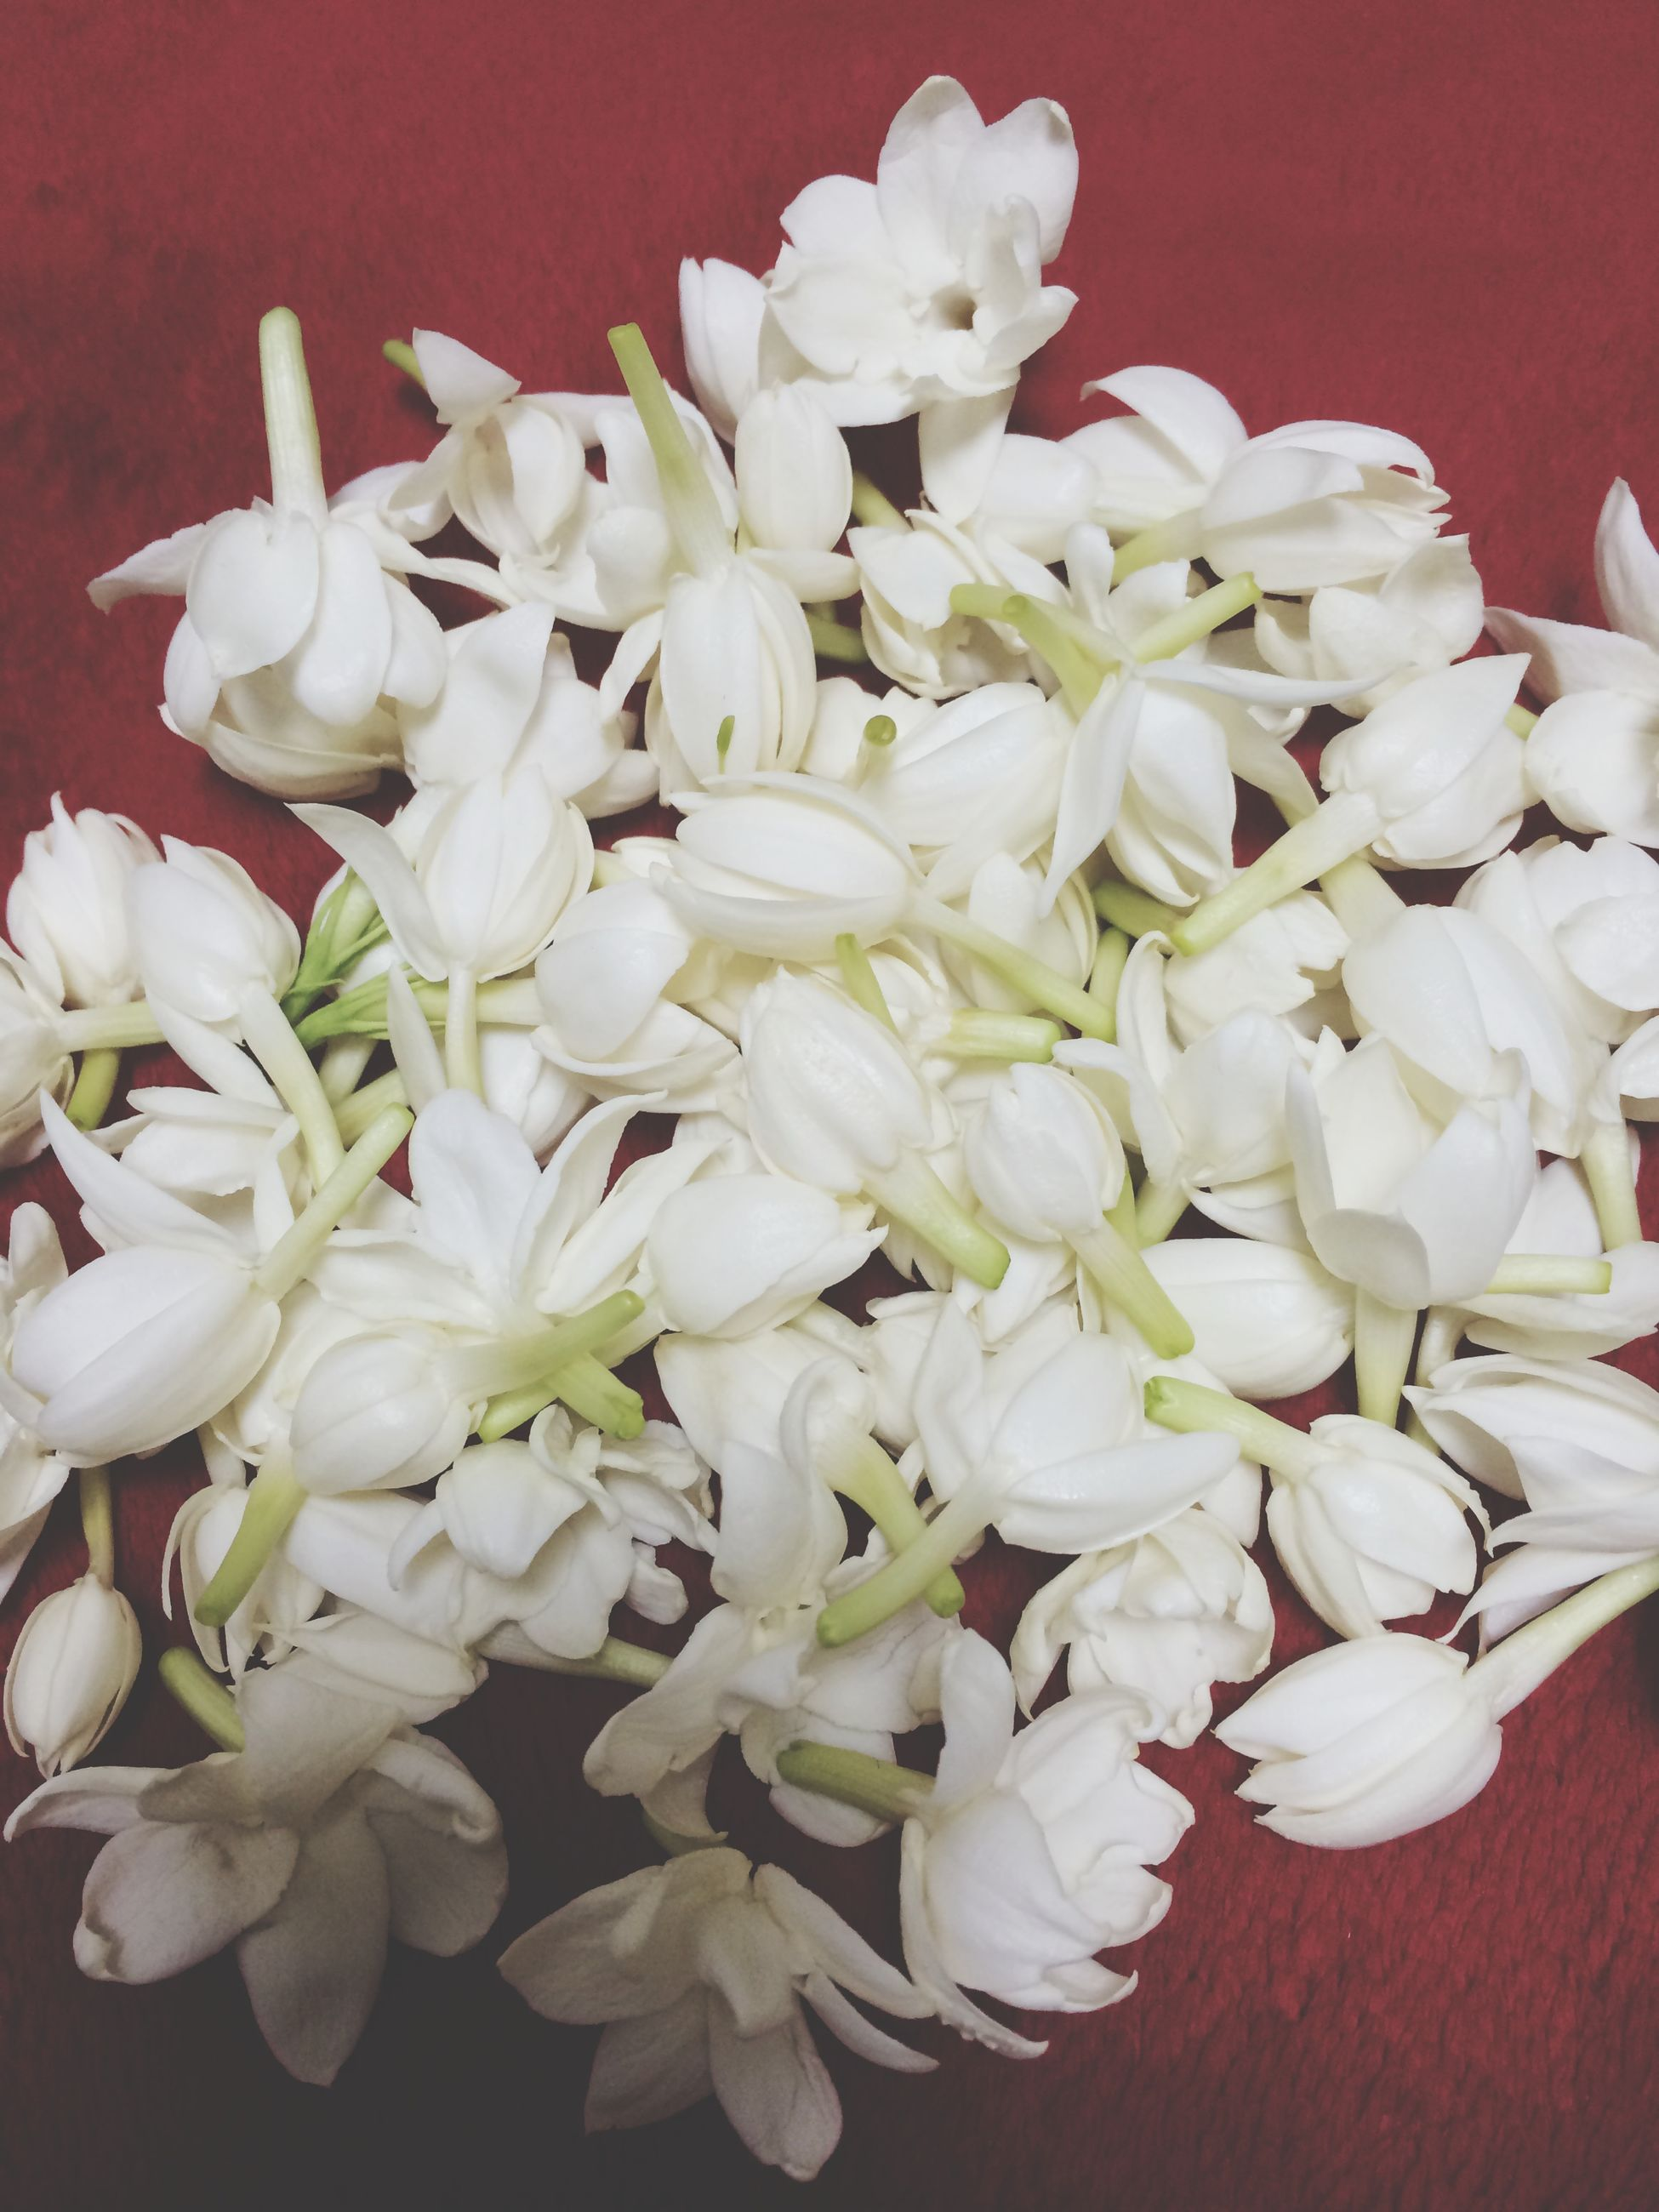 flower, white color, freshness, petal, fragility, indoors, flower head, beauty in nature, close-up, nature, white, high angle view, bunch of flowers, no people, growth, blooming, abundance, bouquet, still life, blossom